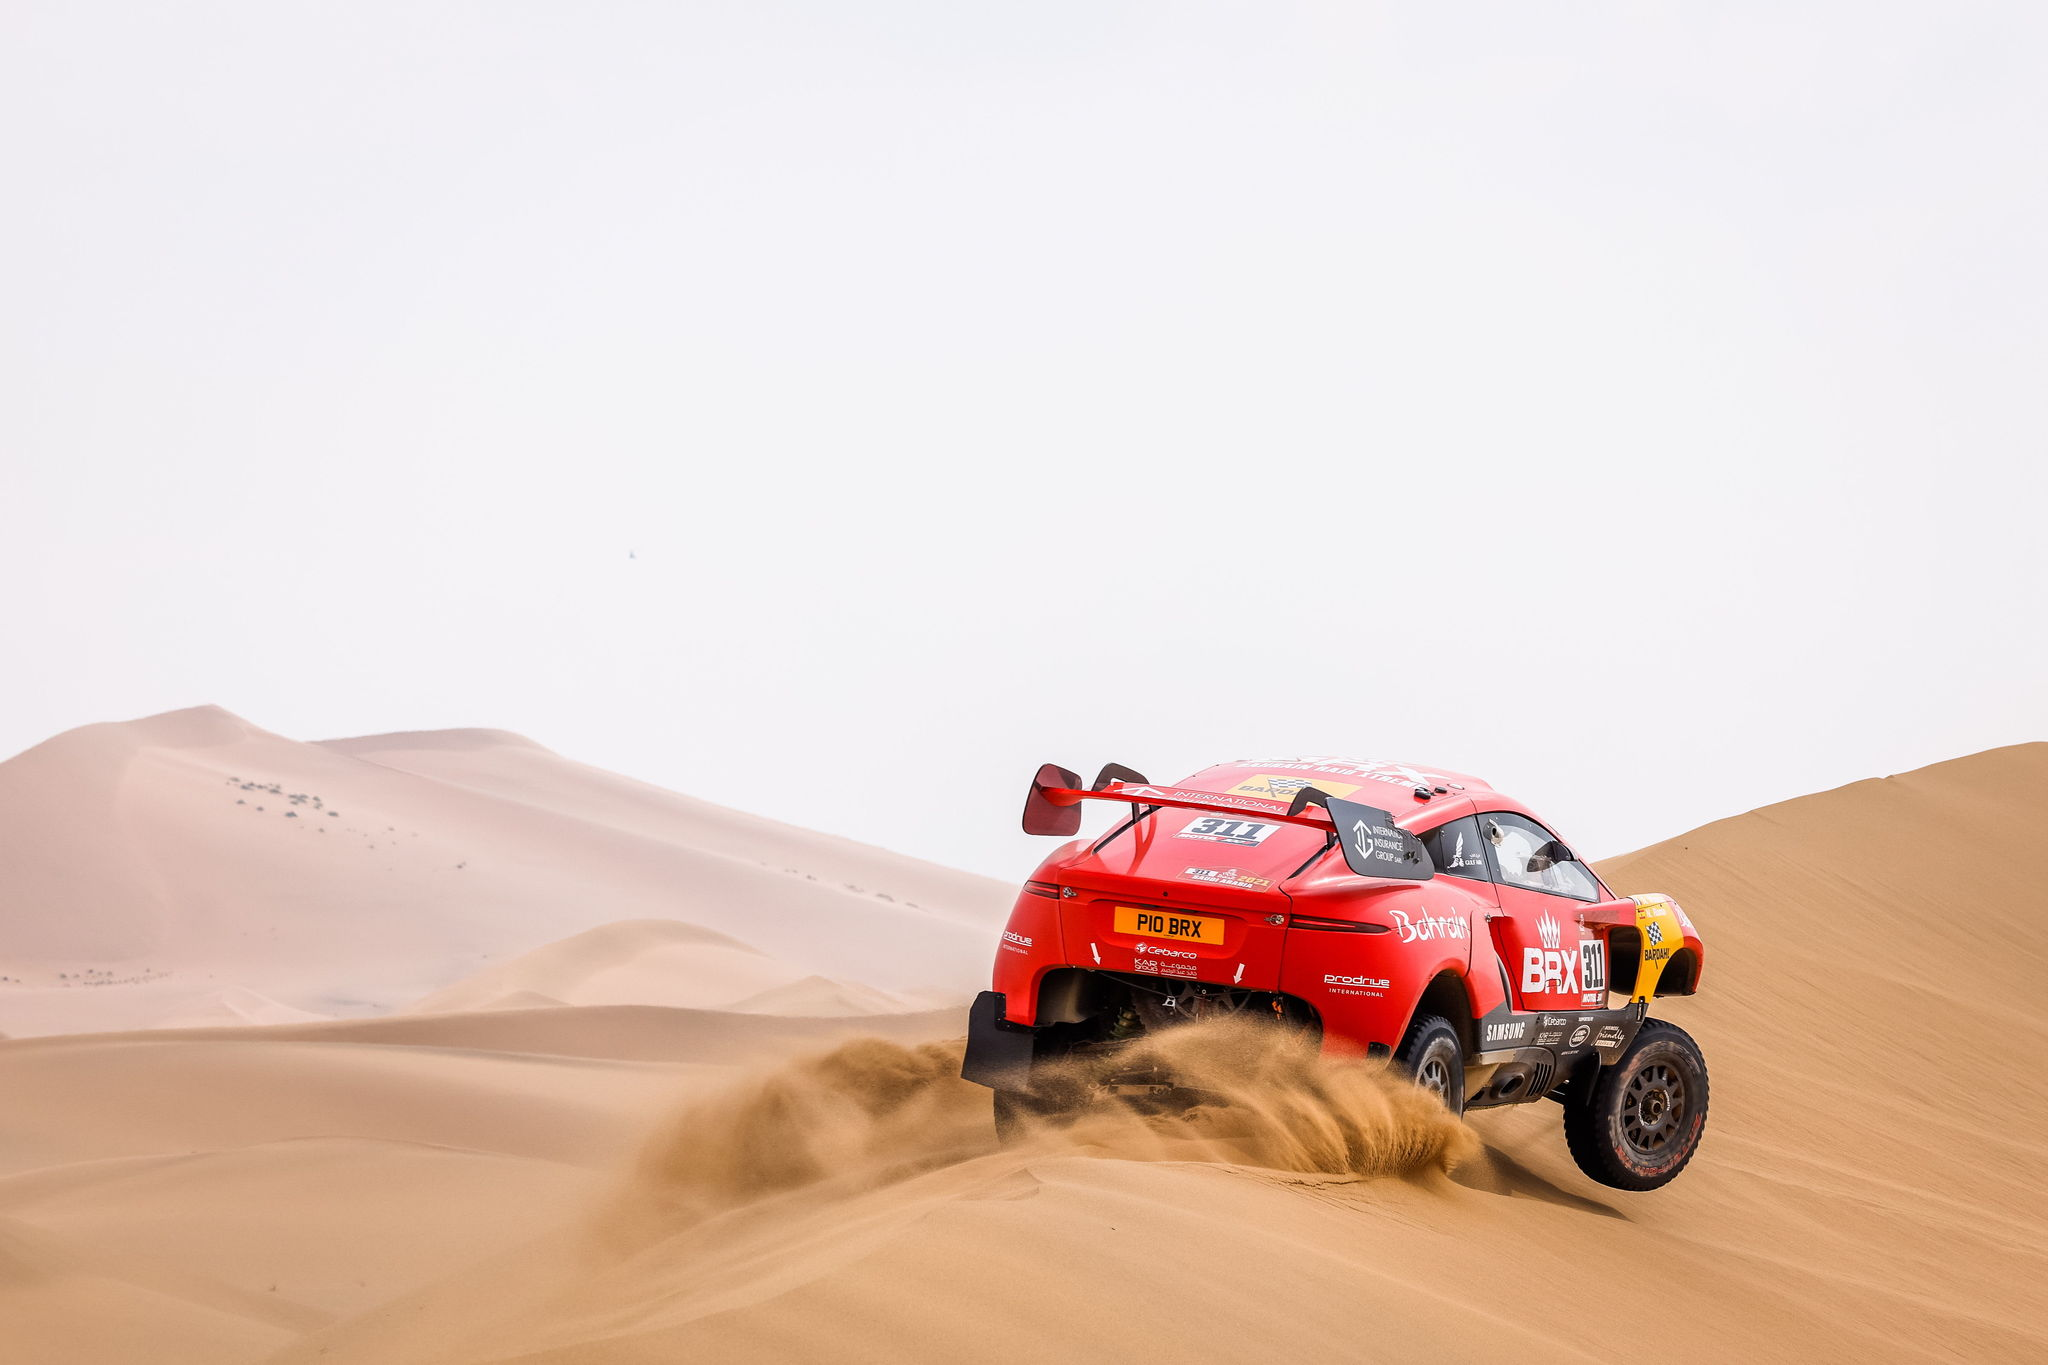 (Saudi Arabia), 14/01/2021.- A handout photo made available by ASO of Nani lt;HIT gt;Roma lt;/HIT gt; of Spain and Alexandre Winocq of France, Hunter, Bahrain Raid Xtreme, in action during the 11th stage of the Dakar 2021 between Al-Ula and Yanbu, in Saudi Arabia, 14 January 2021. (Bahrein, Francia, Arabia Saudita, España) EFE/EPA/Frederic Le Floch HANDOUT via ASO SHUTTERSTOCK OUT HANDOUT EDITORIAL USE ONLY/NO SALES/NO ARCHIVES